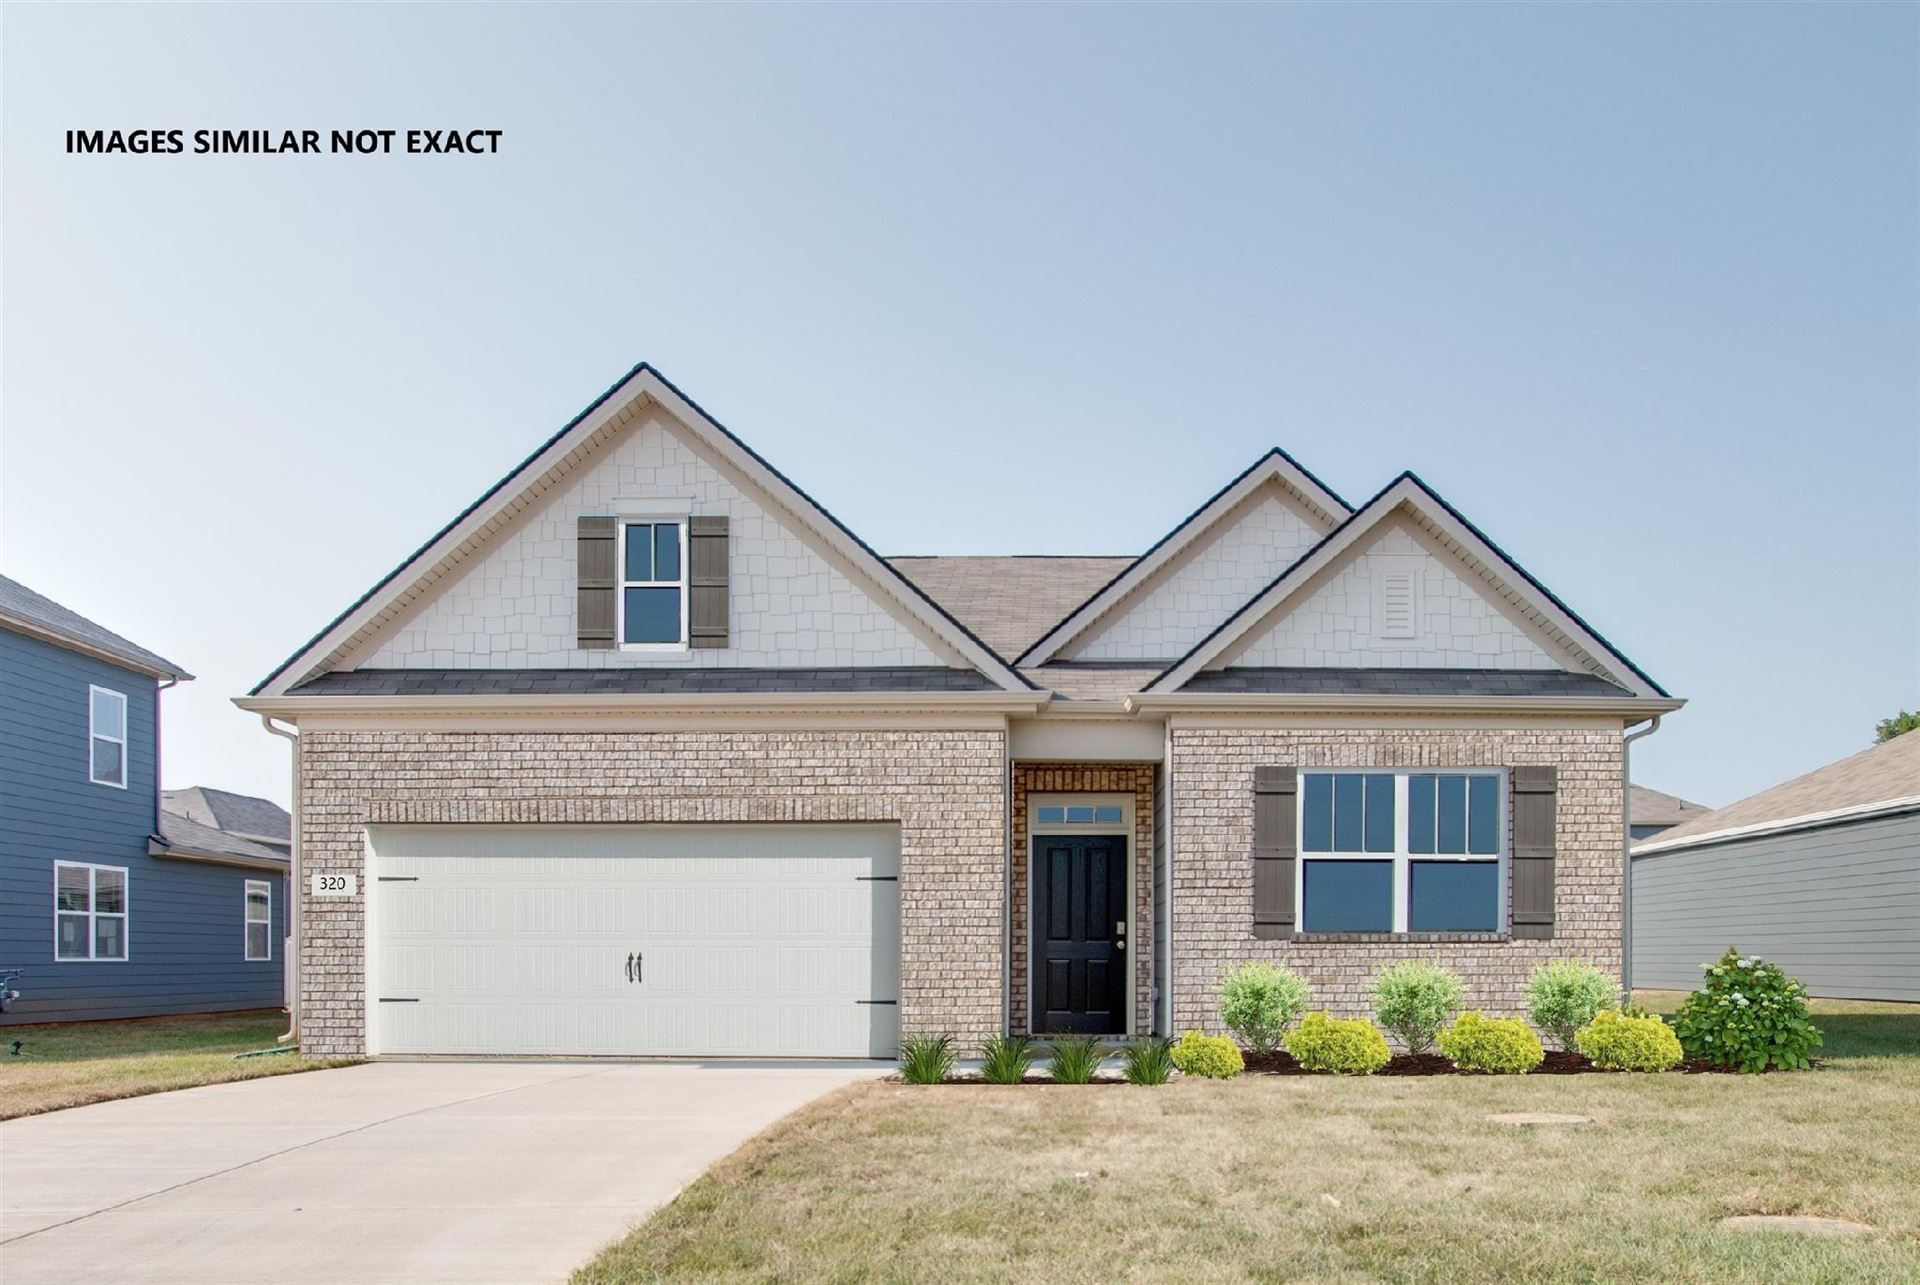 7083 Sunny Parks Drive, White House, TN 37188 - MLS#: 2220222